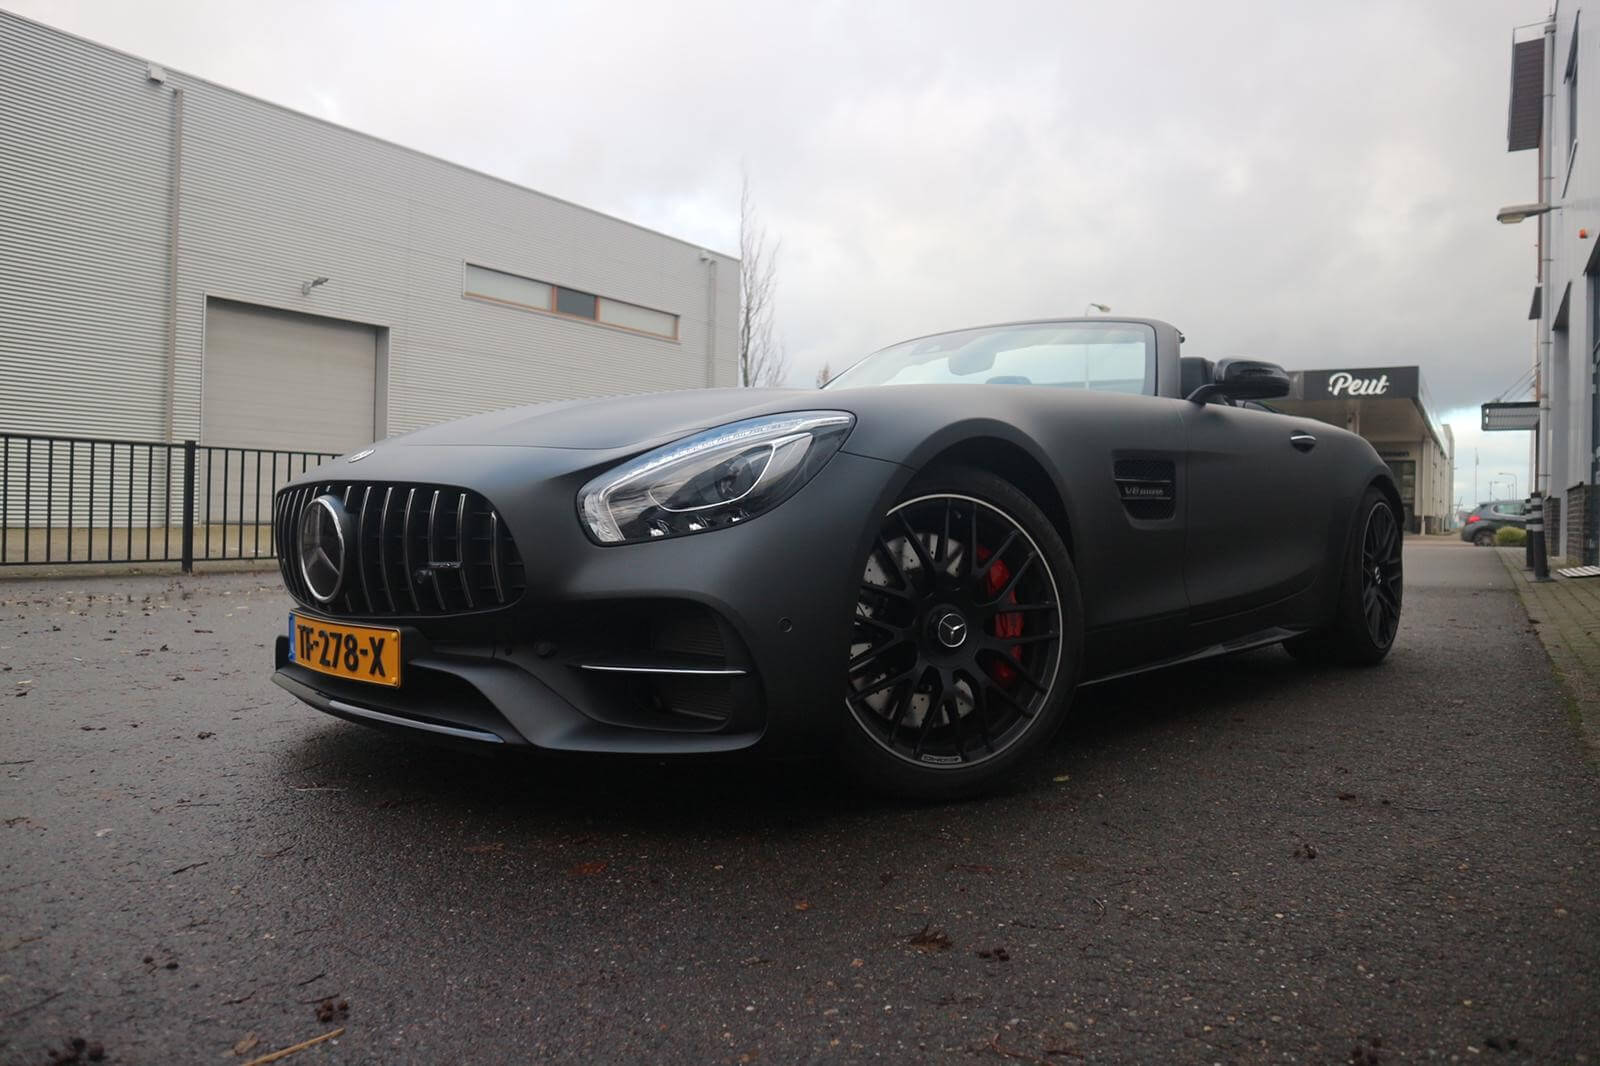 Carwrapping Mercedes AMG GT C Roadster in matzwart